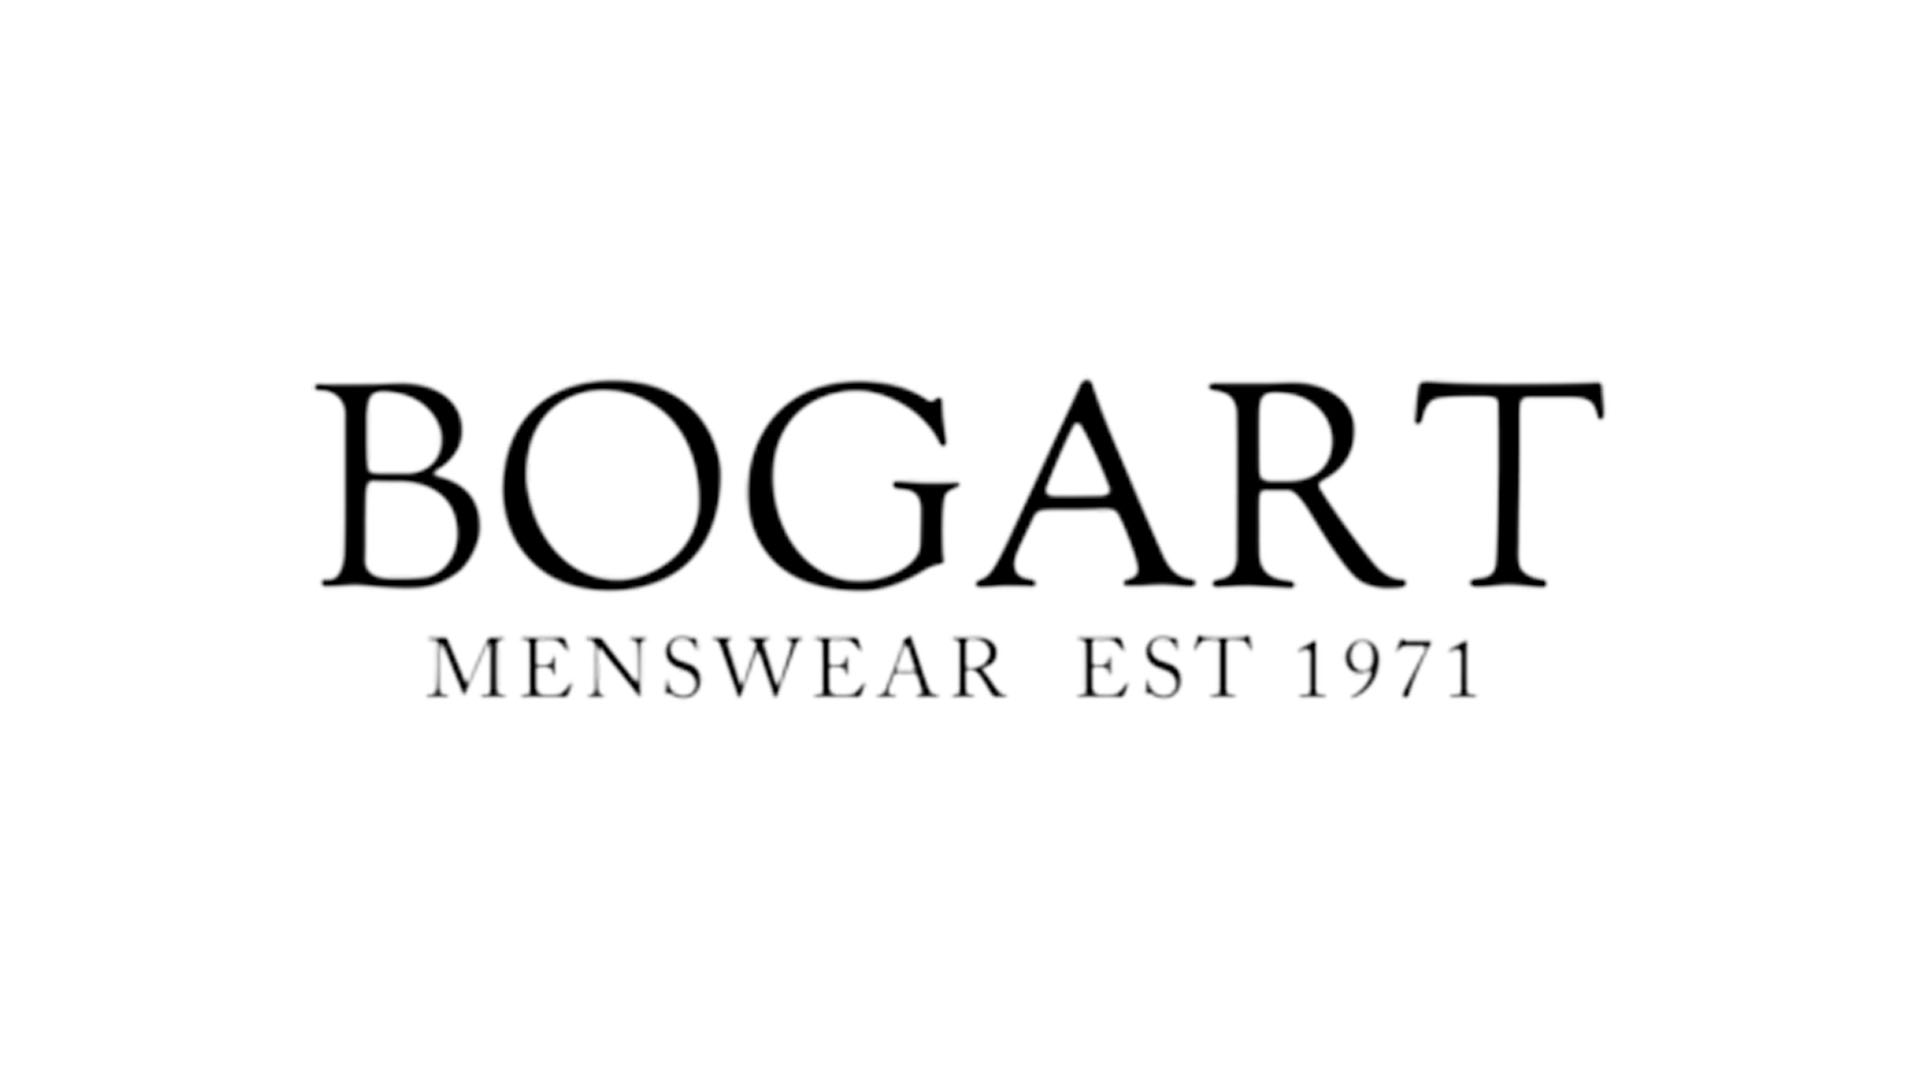 Established over 40 years, Bogart Menswear based in Belfast & Newry, is one of Ireland's leading fashion stores. Synonymous with high quality menswear, we pride ourselves on delivering an unrivalled customer service, stocking a wide range of leading designer brands including Barbour, RM Williams, Eterna, Loake, Strellson, and Lyle & Scott.